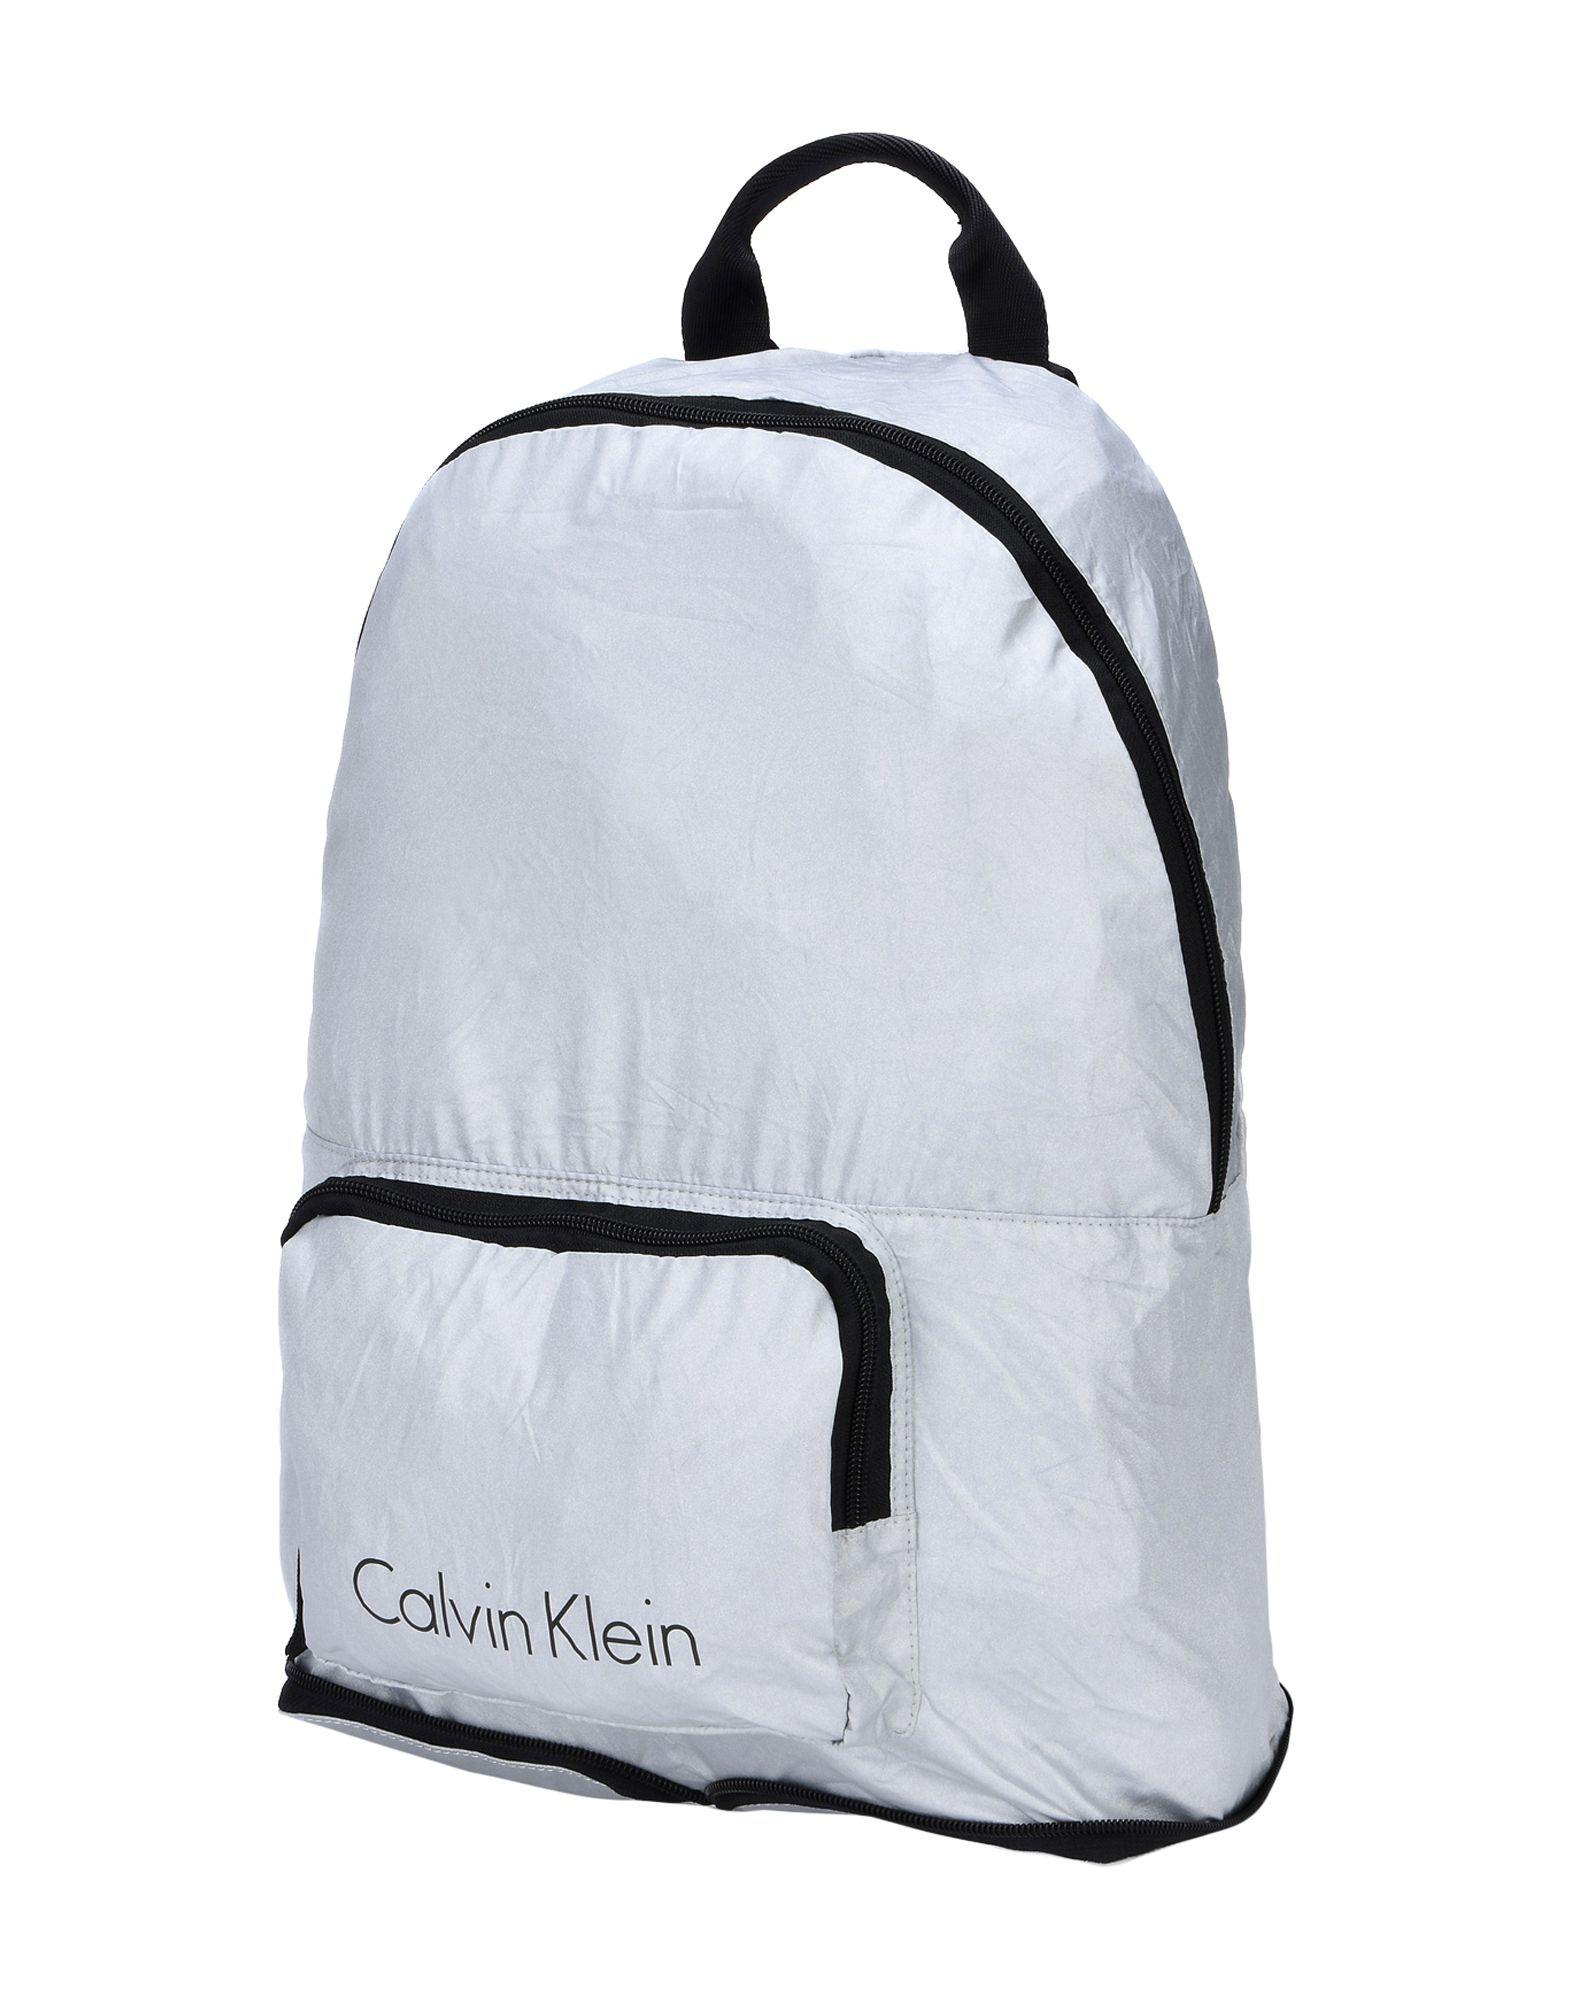 BAGS - Backpacks & Bum bags CALVIN KLEIN 205W39NYC Me6x0r